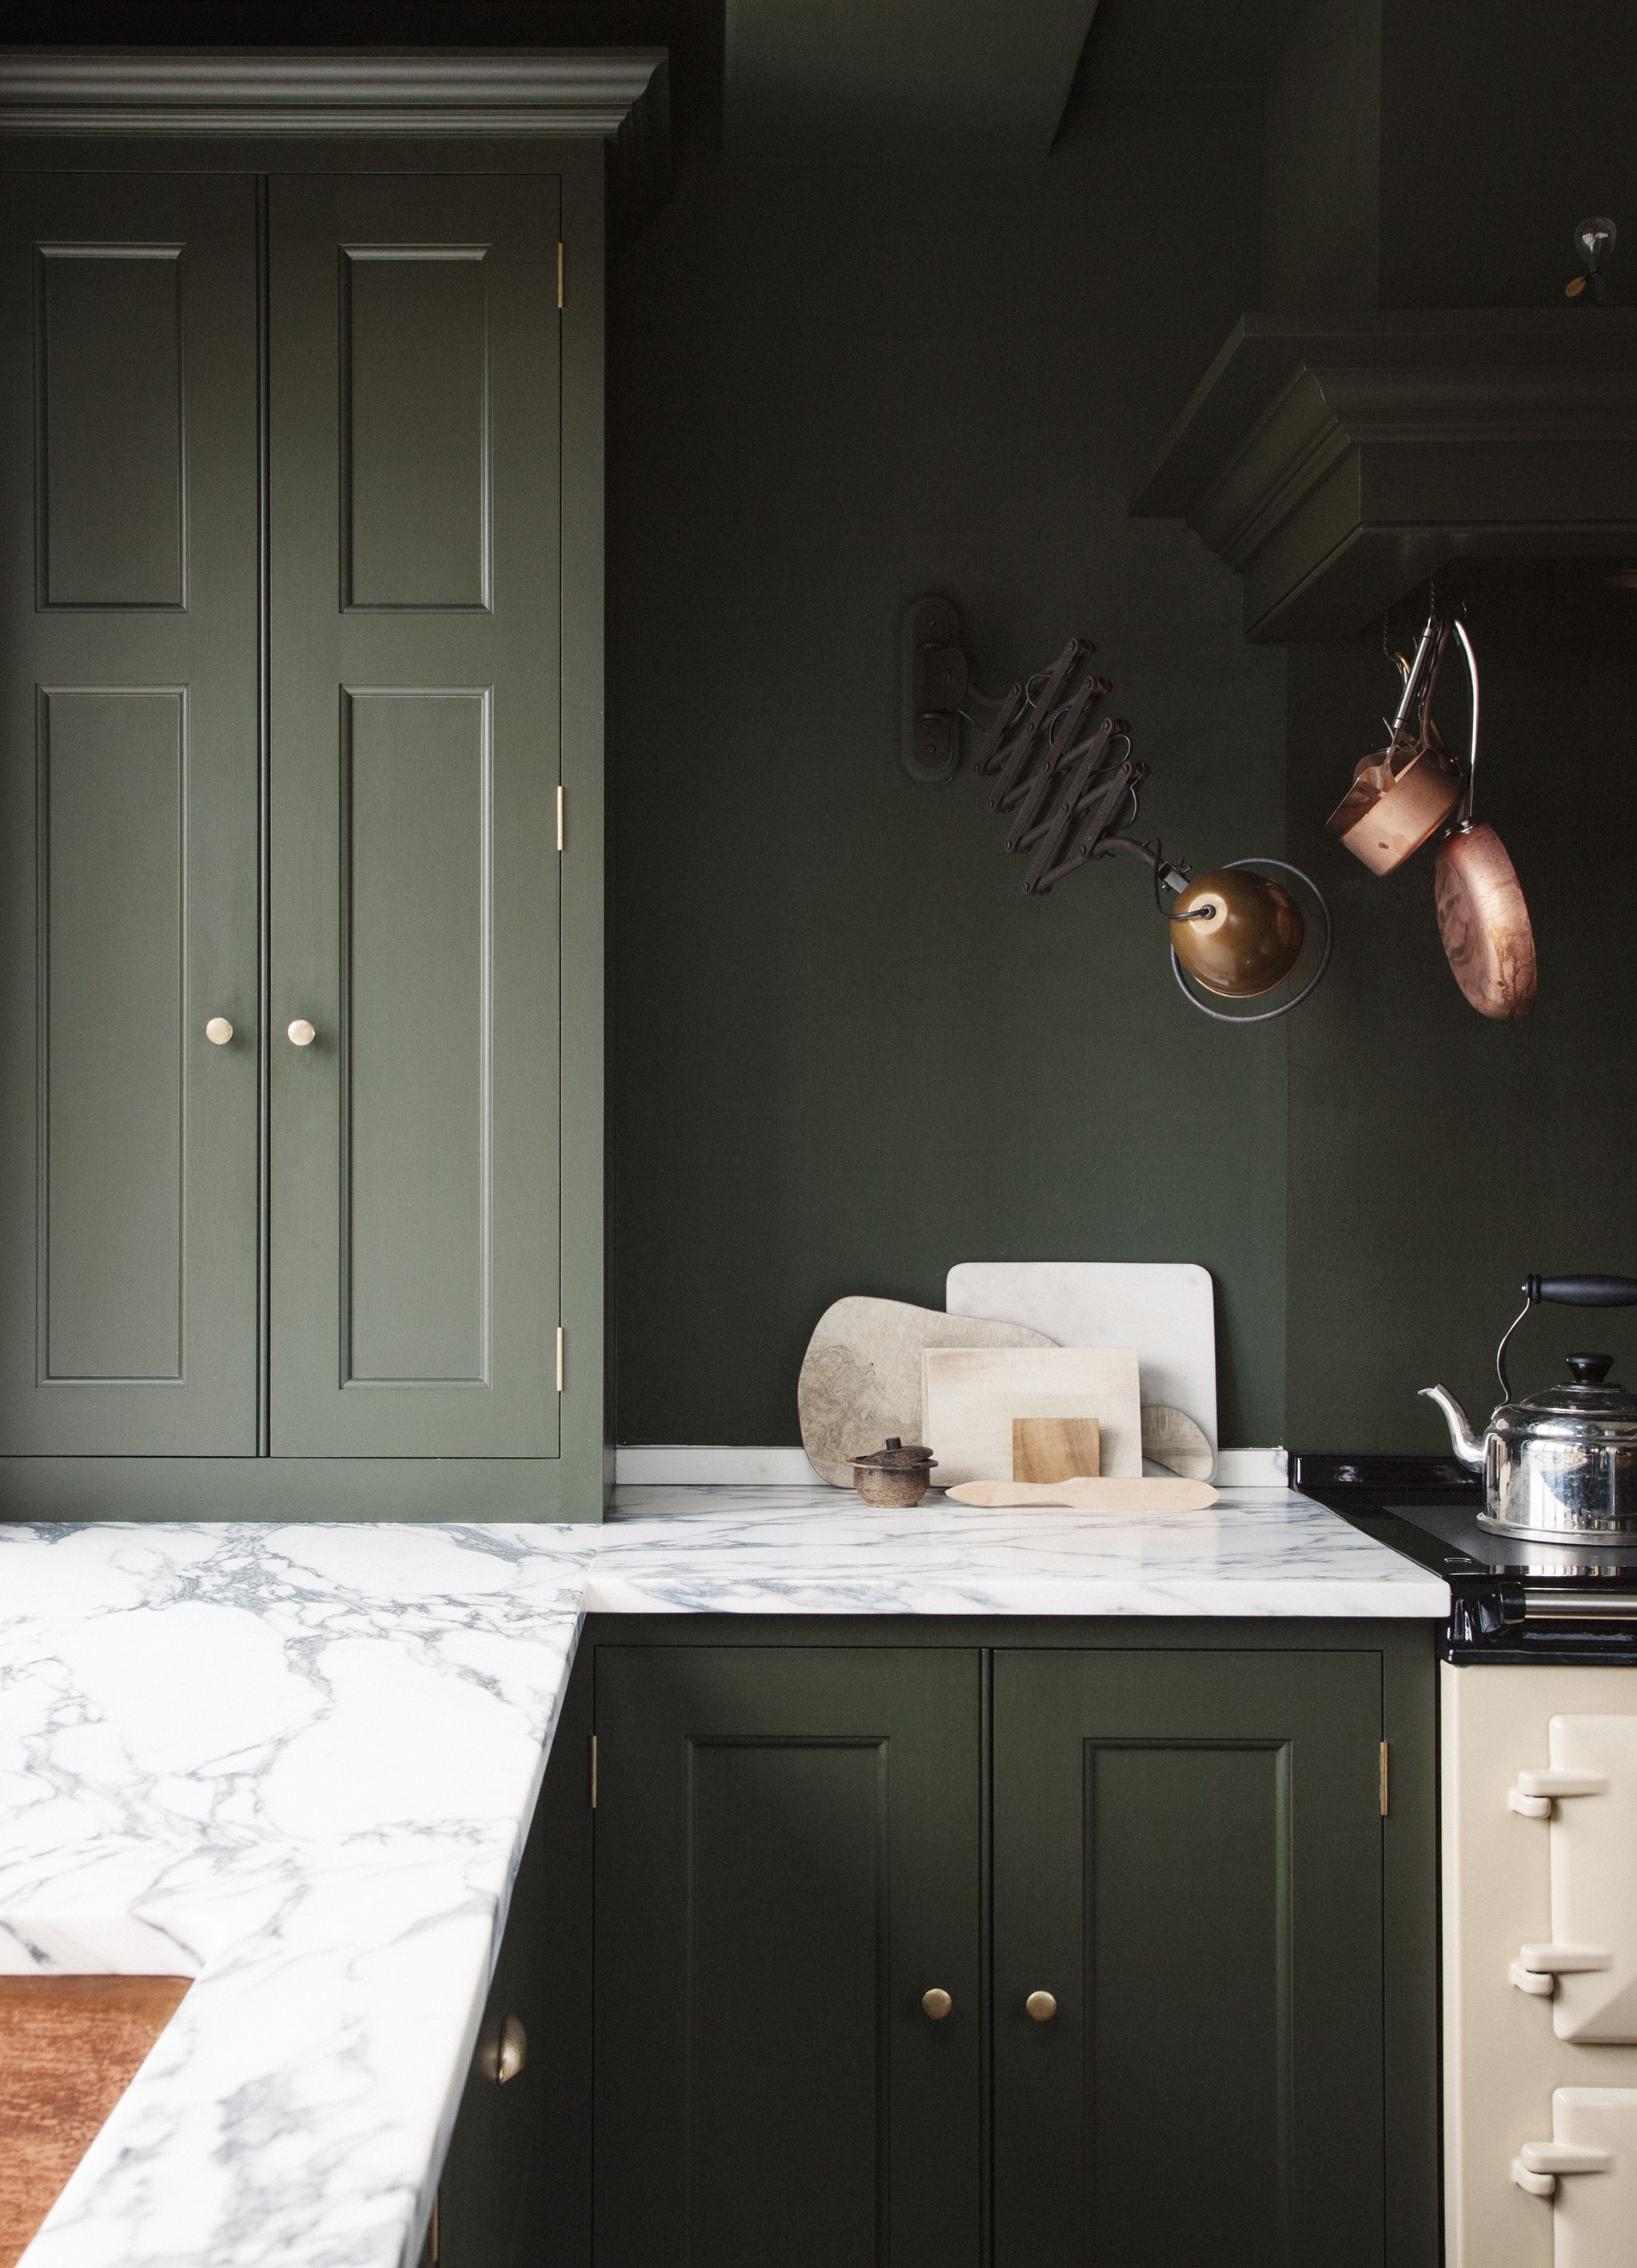 Green Kitchen Cabinet And Matching Wall Colour